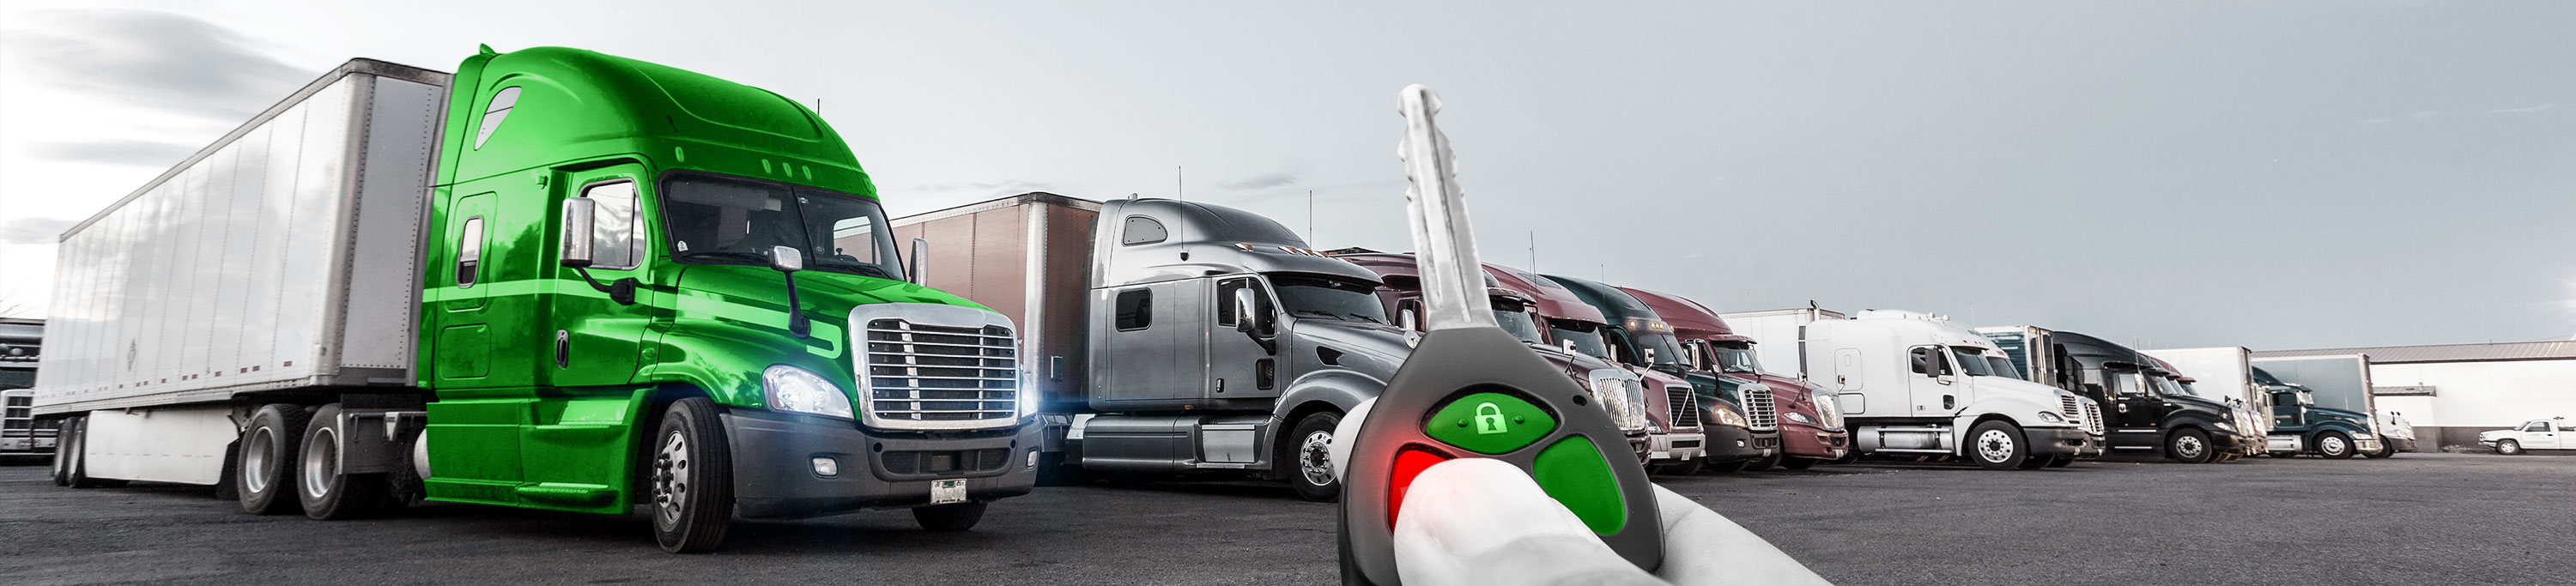 Trucking company financing